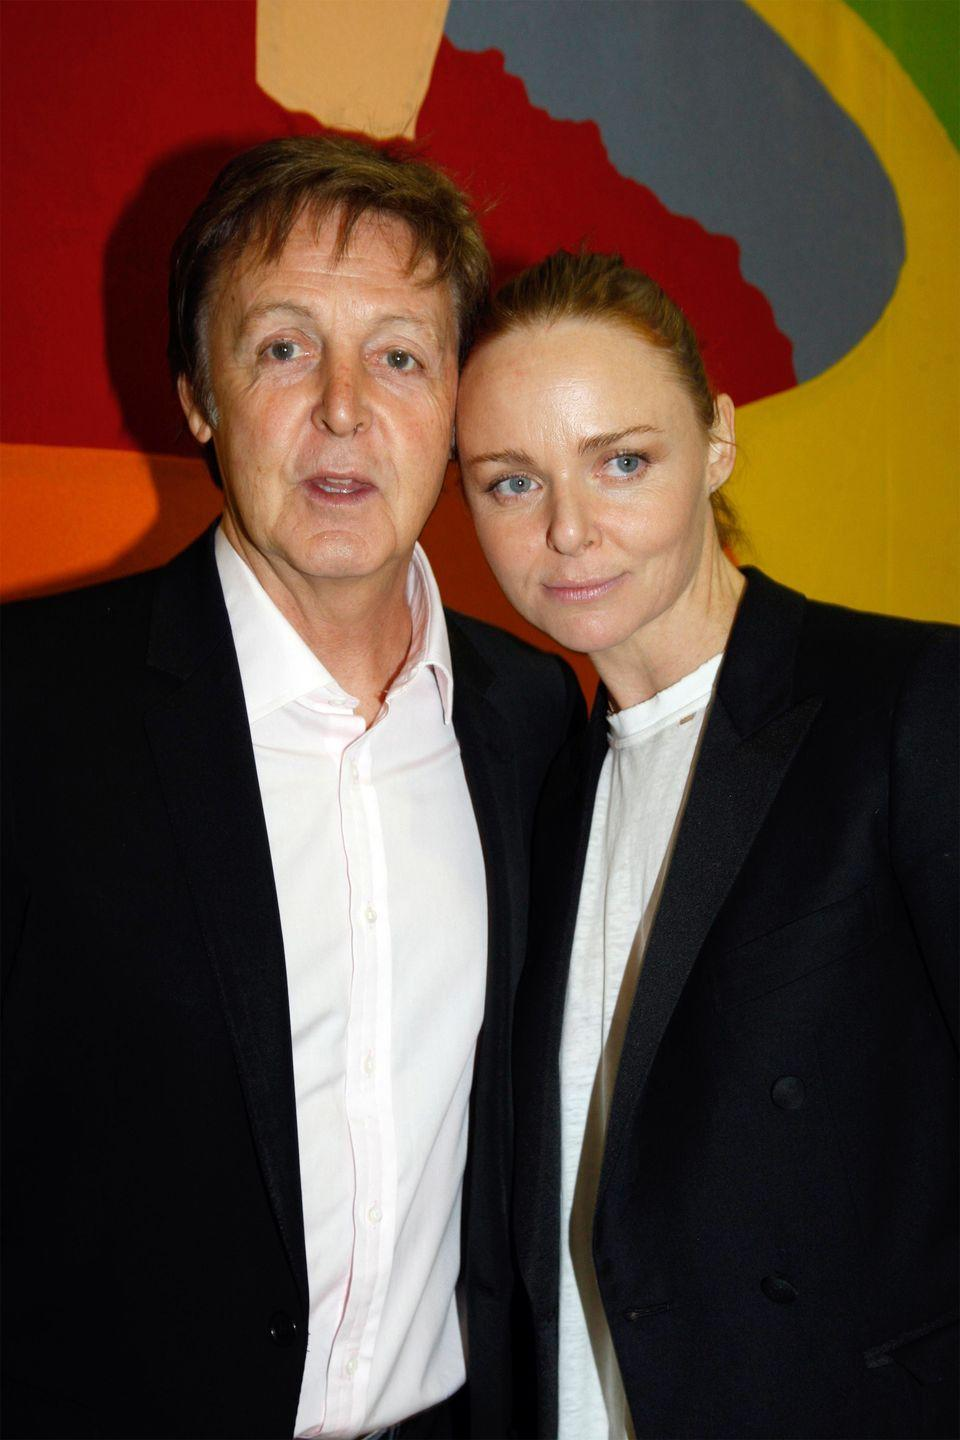 <p>Before she was a world-renowned fashion designer, Stella McCartney was just the daughter of everyone's favorite Beatle. She has his large eyes and facial structure to prove it. </p>